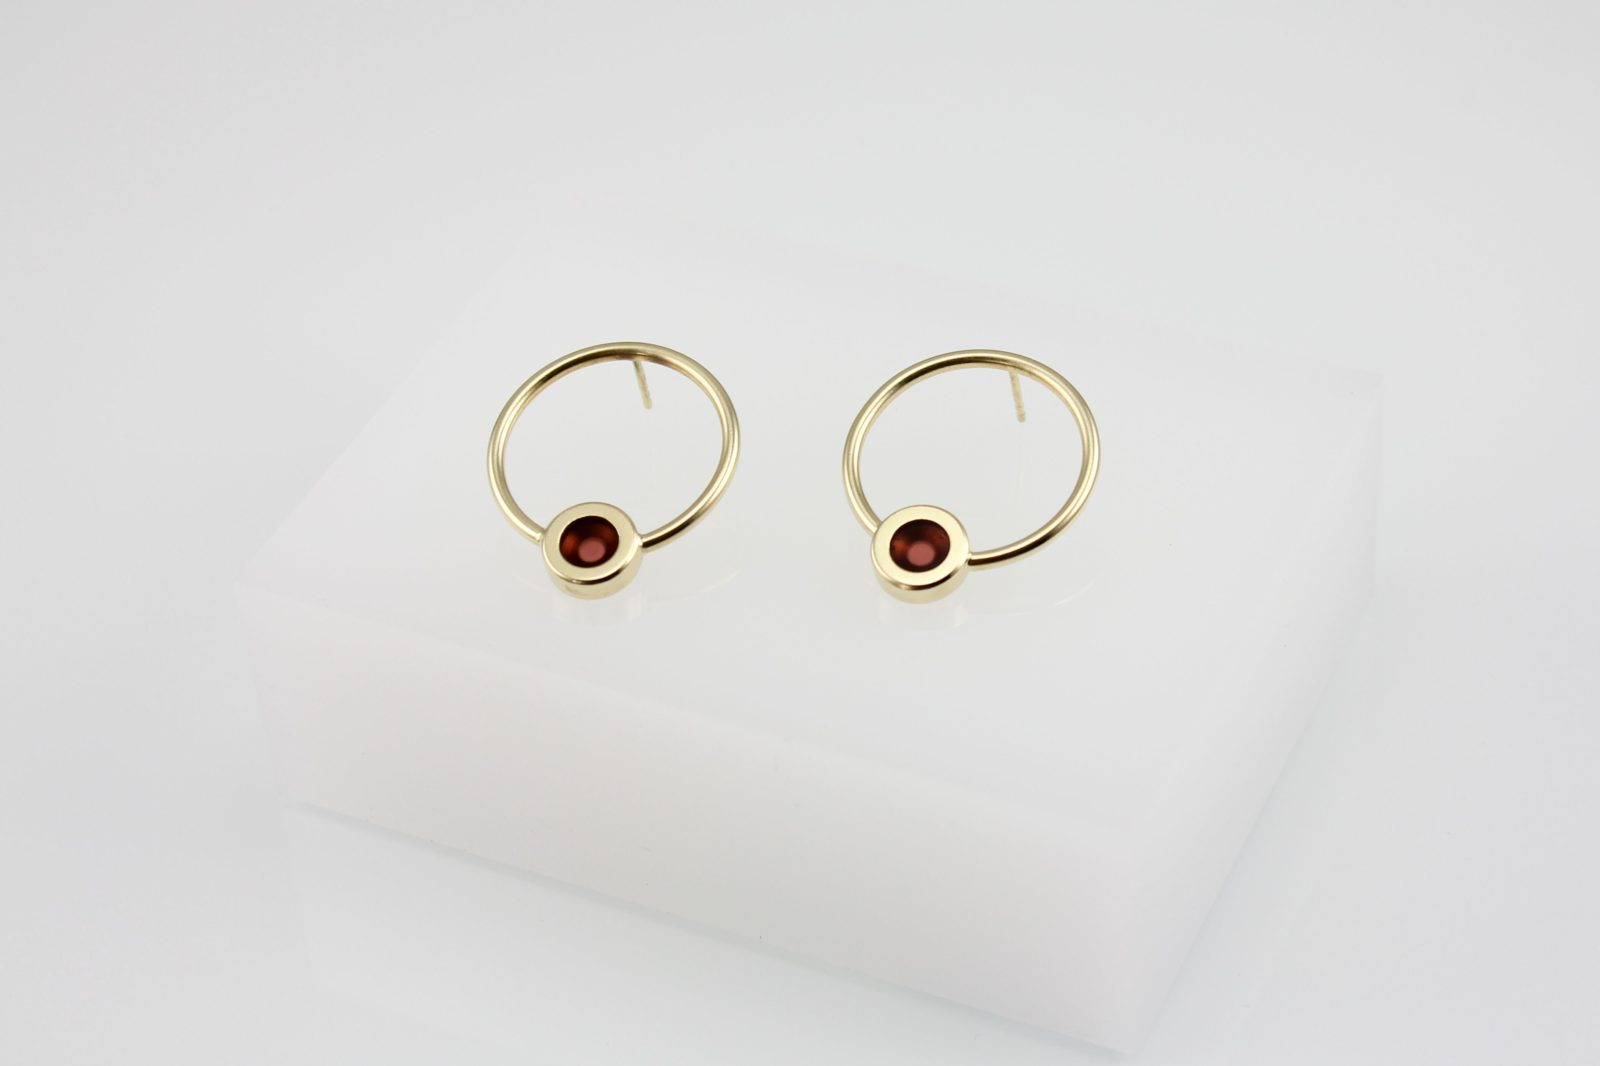 Kyō earrings round 4.200 CZK